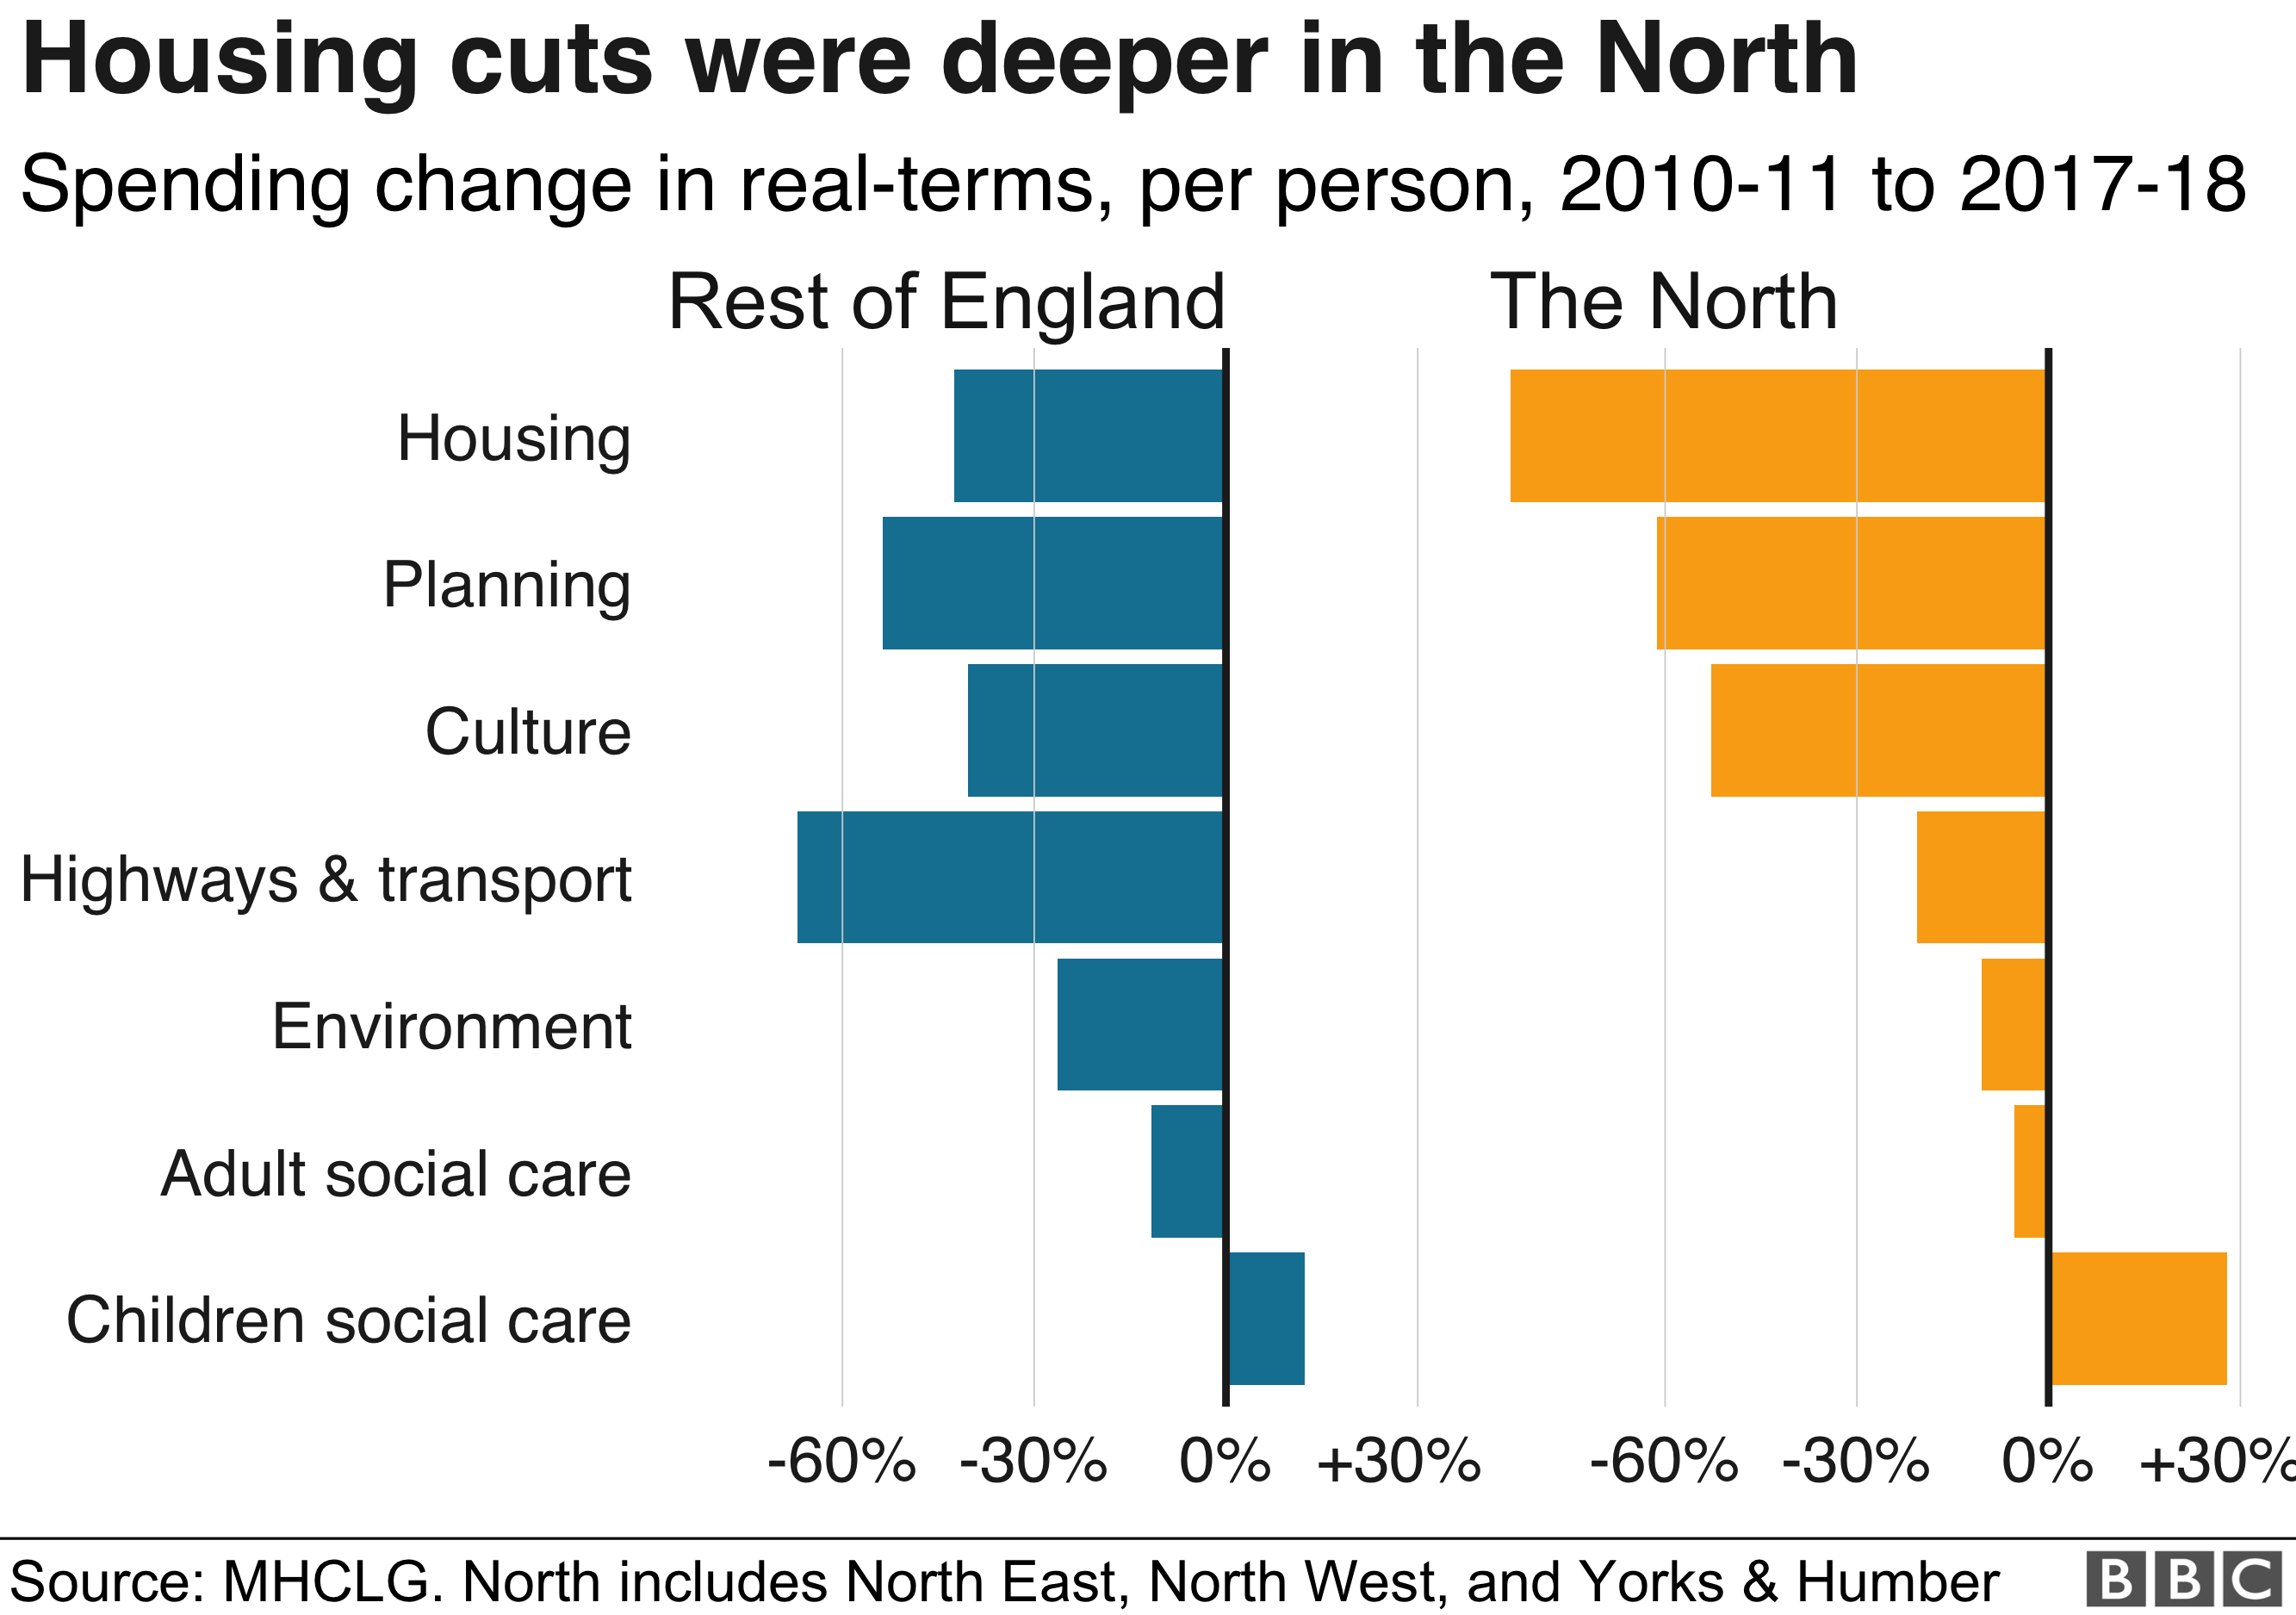 Chart showing housing spend changes in the north